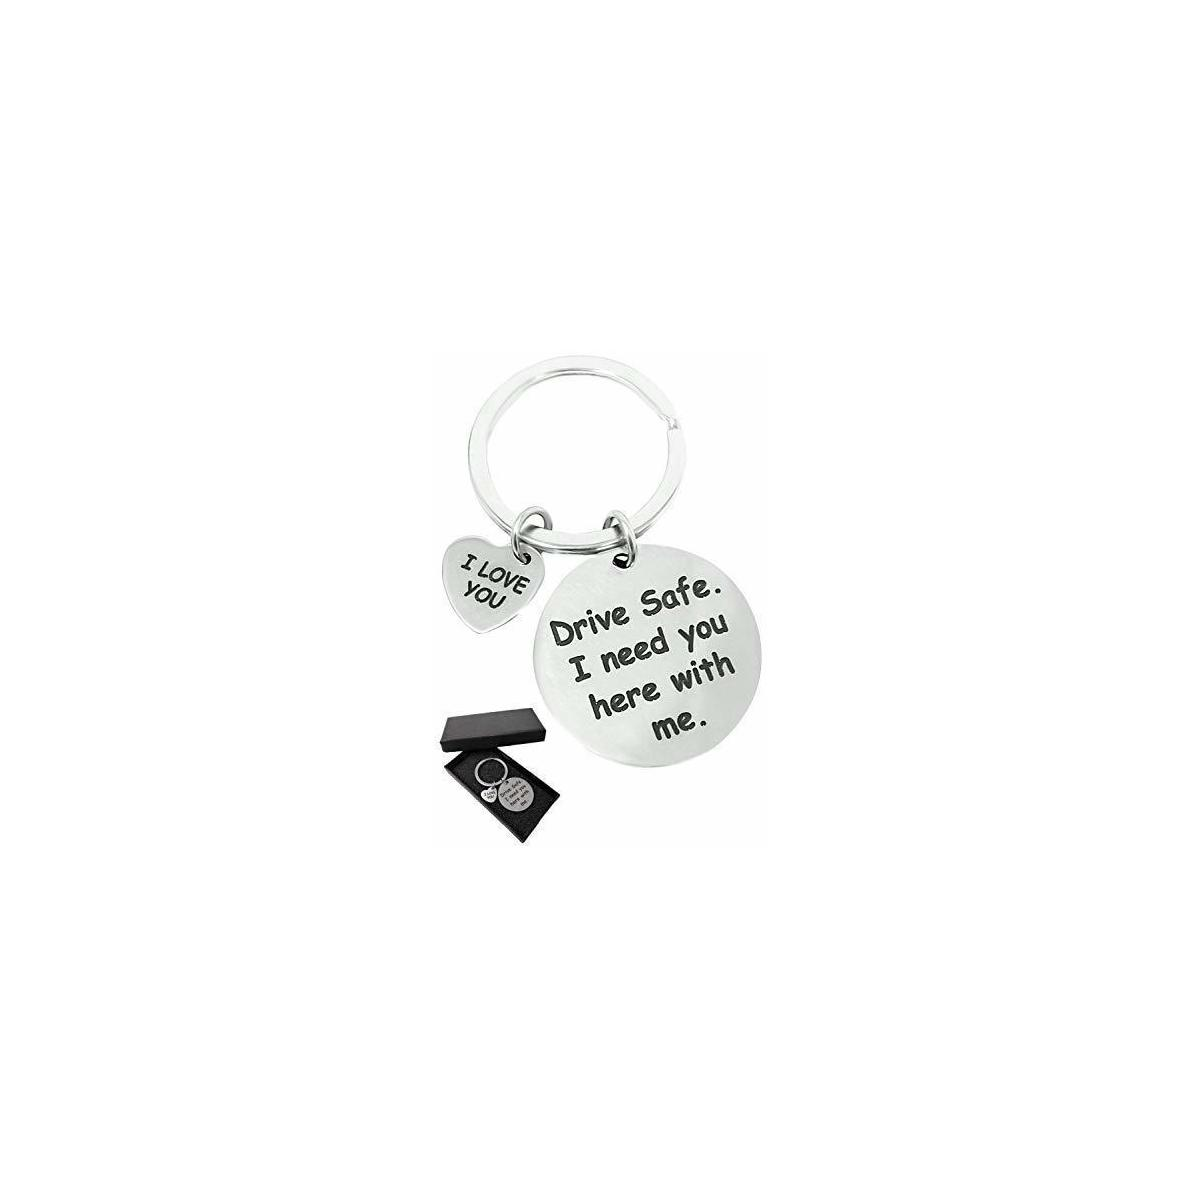 Drive Safe - I Love You - Cute Keychain Gift by Jim Guyver - For Girlfriend Boyfriend Valentine Dad & Husband - Let Your Loved Ones Know You Care & Bring A Smile To Them